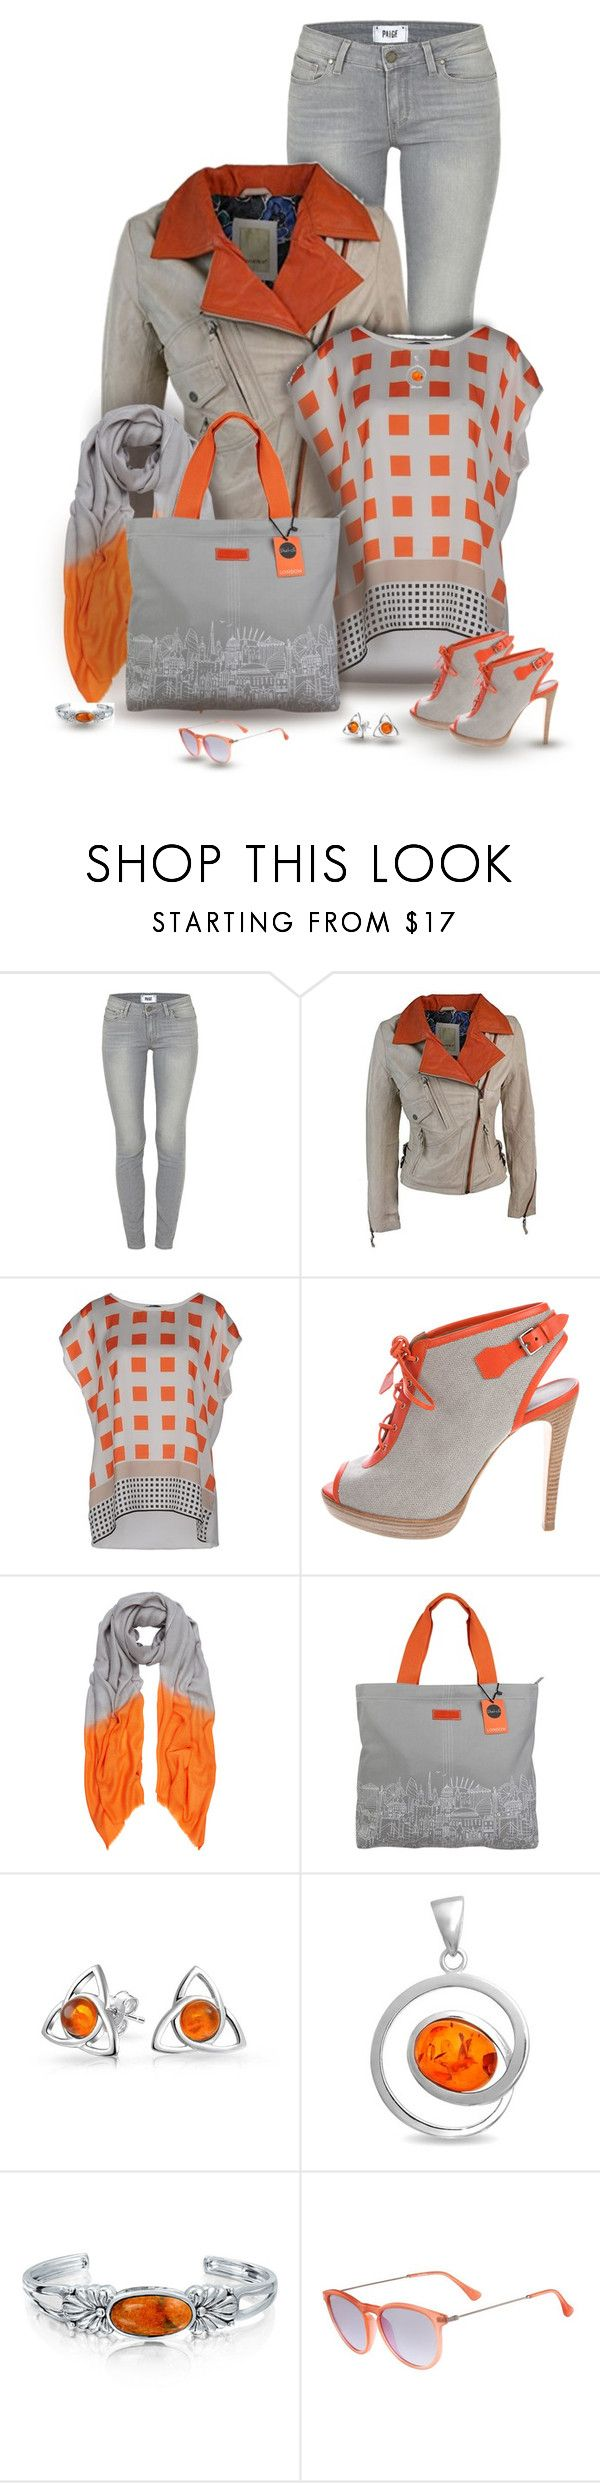 """""""set"""" by vesper1977 ❤ liked on Polyvore featuring Paige Denim, Blue Les Copains, Hermès, Allegra London and Bling Jewelry"""